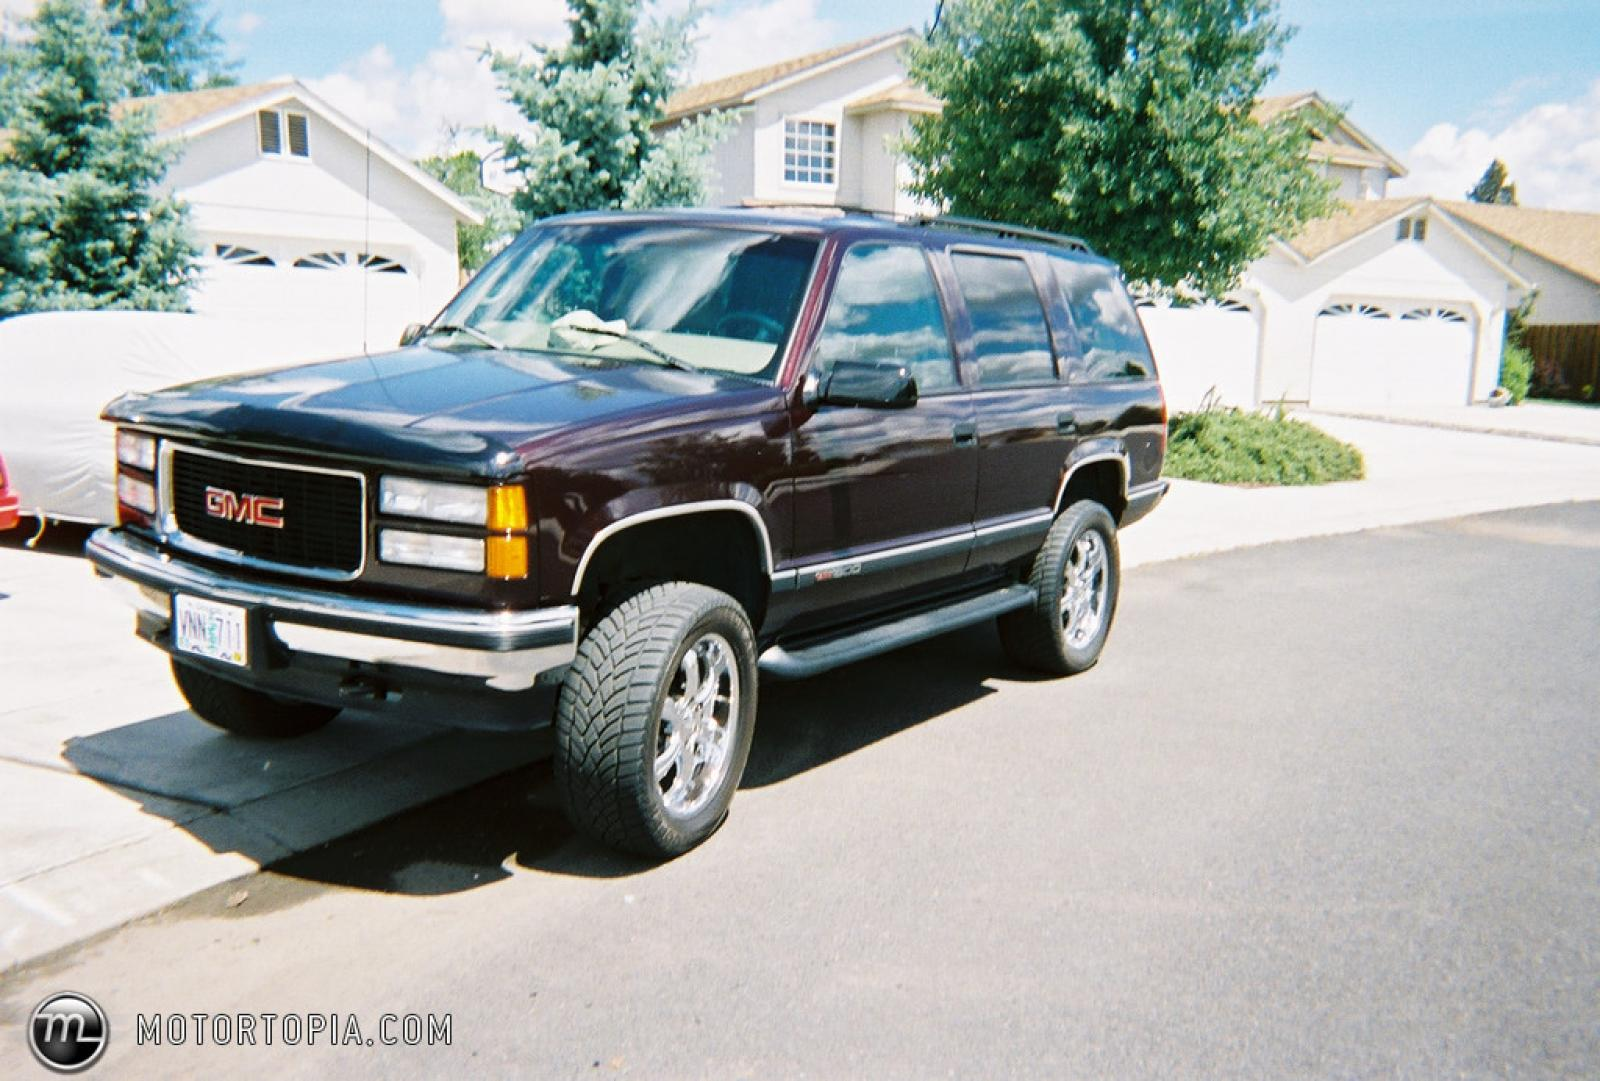 800 1024 1280 1600 origin 1997 gmc yukon